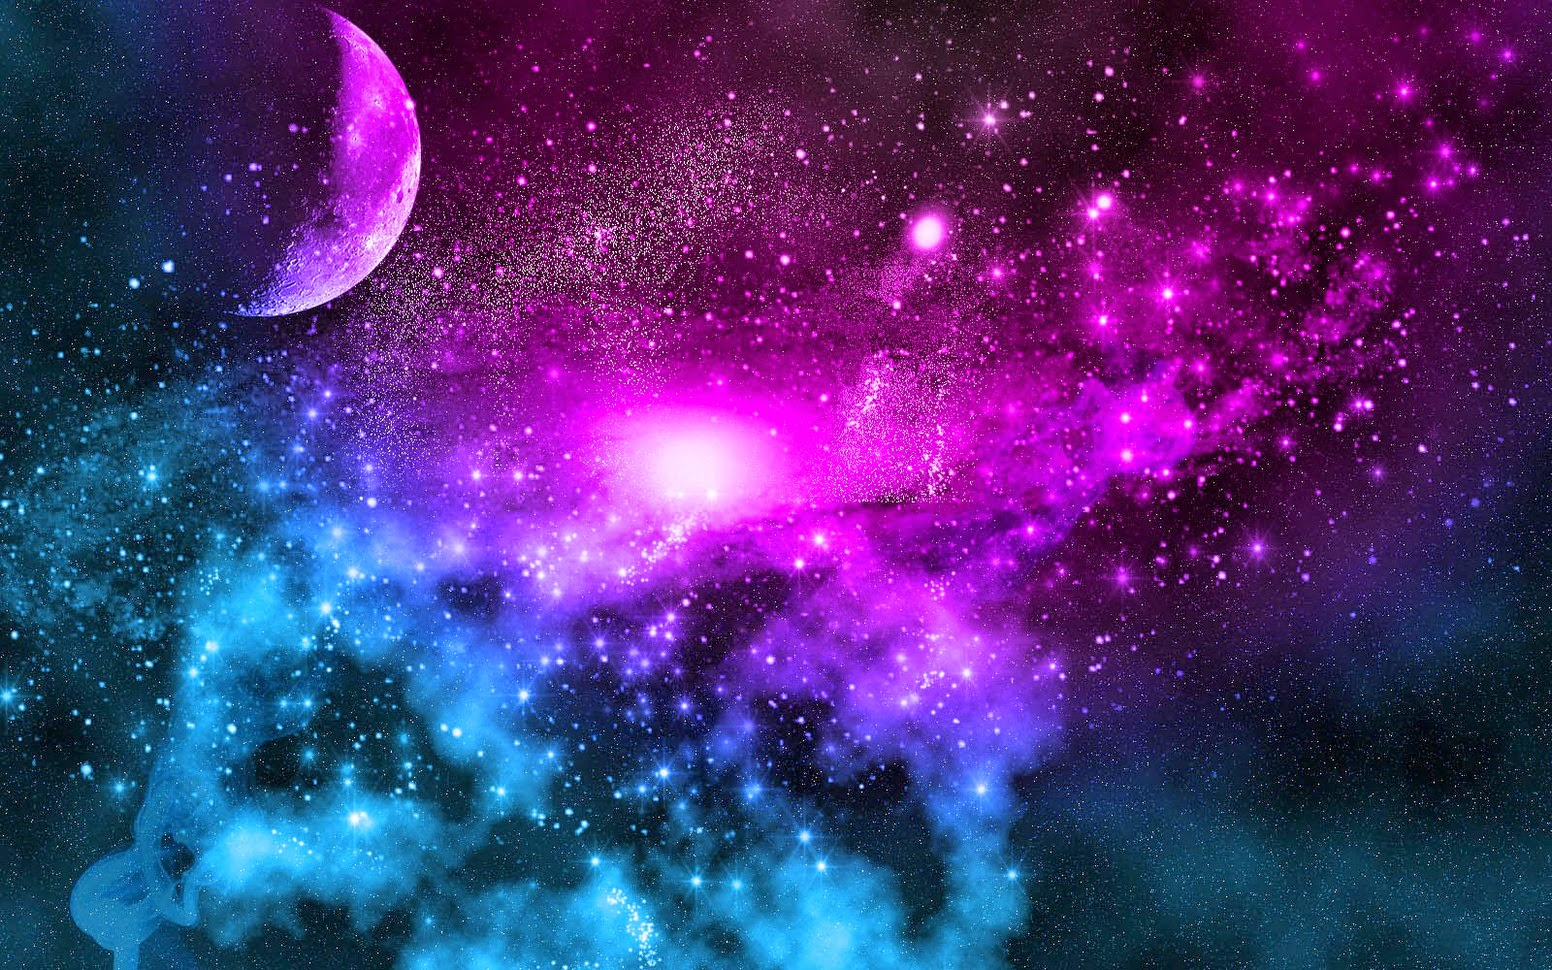 Galaxy Wallpaper Bedroom